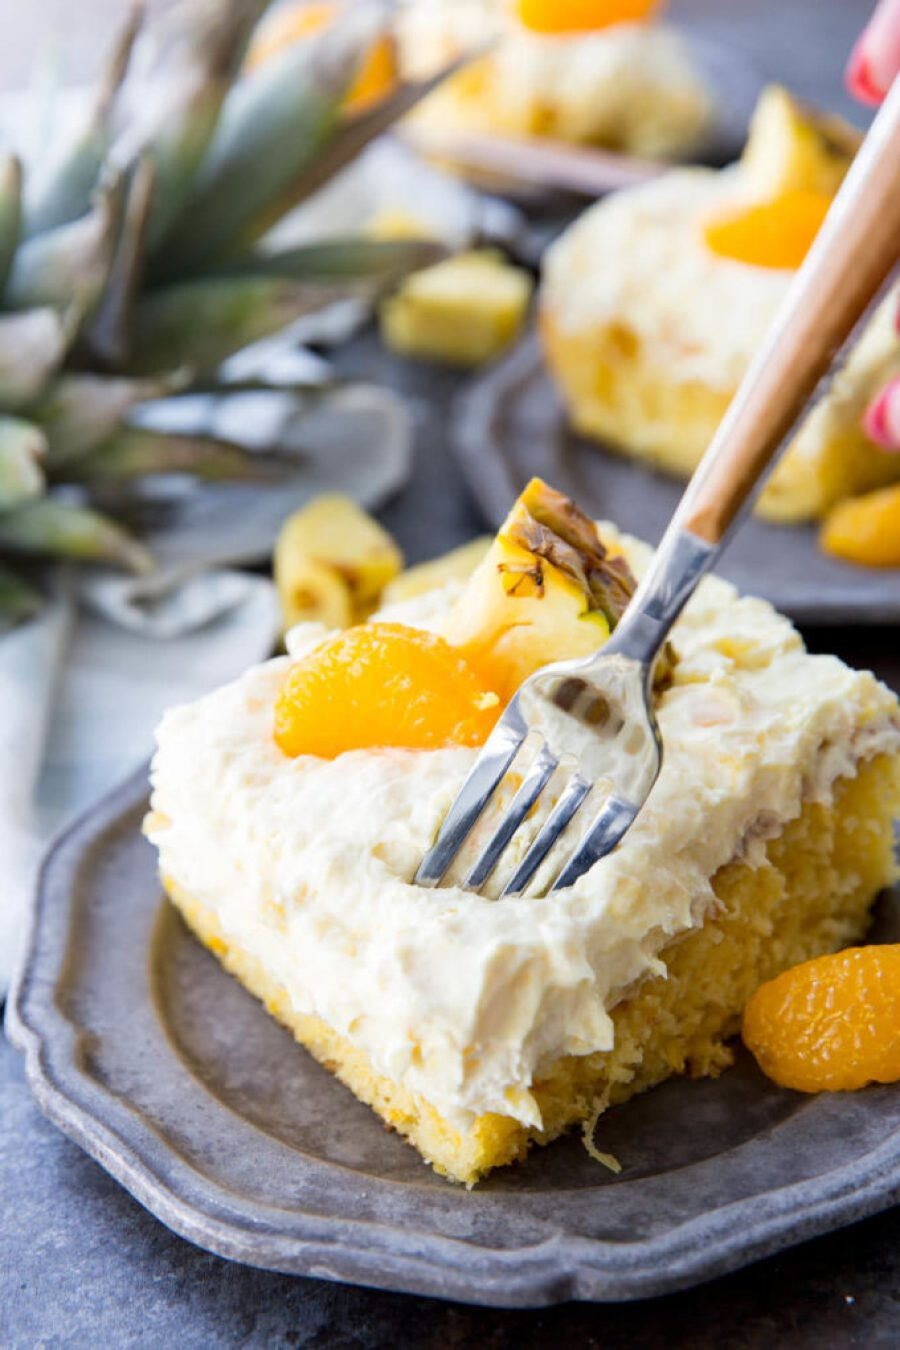 Mandarin Orange Cake with Pineapple fluff frosting or pig pickin' cake is delicious yellow cake with fruity highlights. It is a family favorite